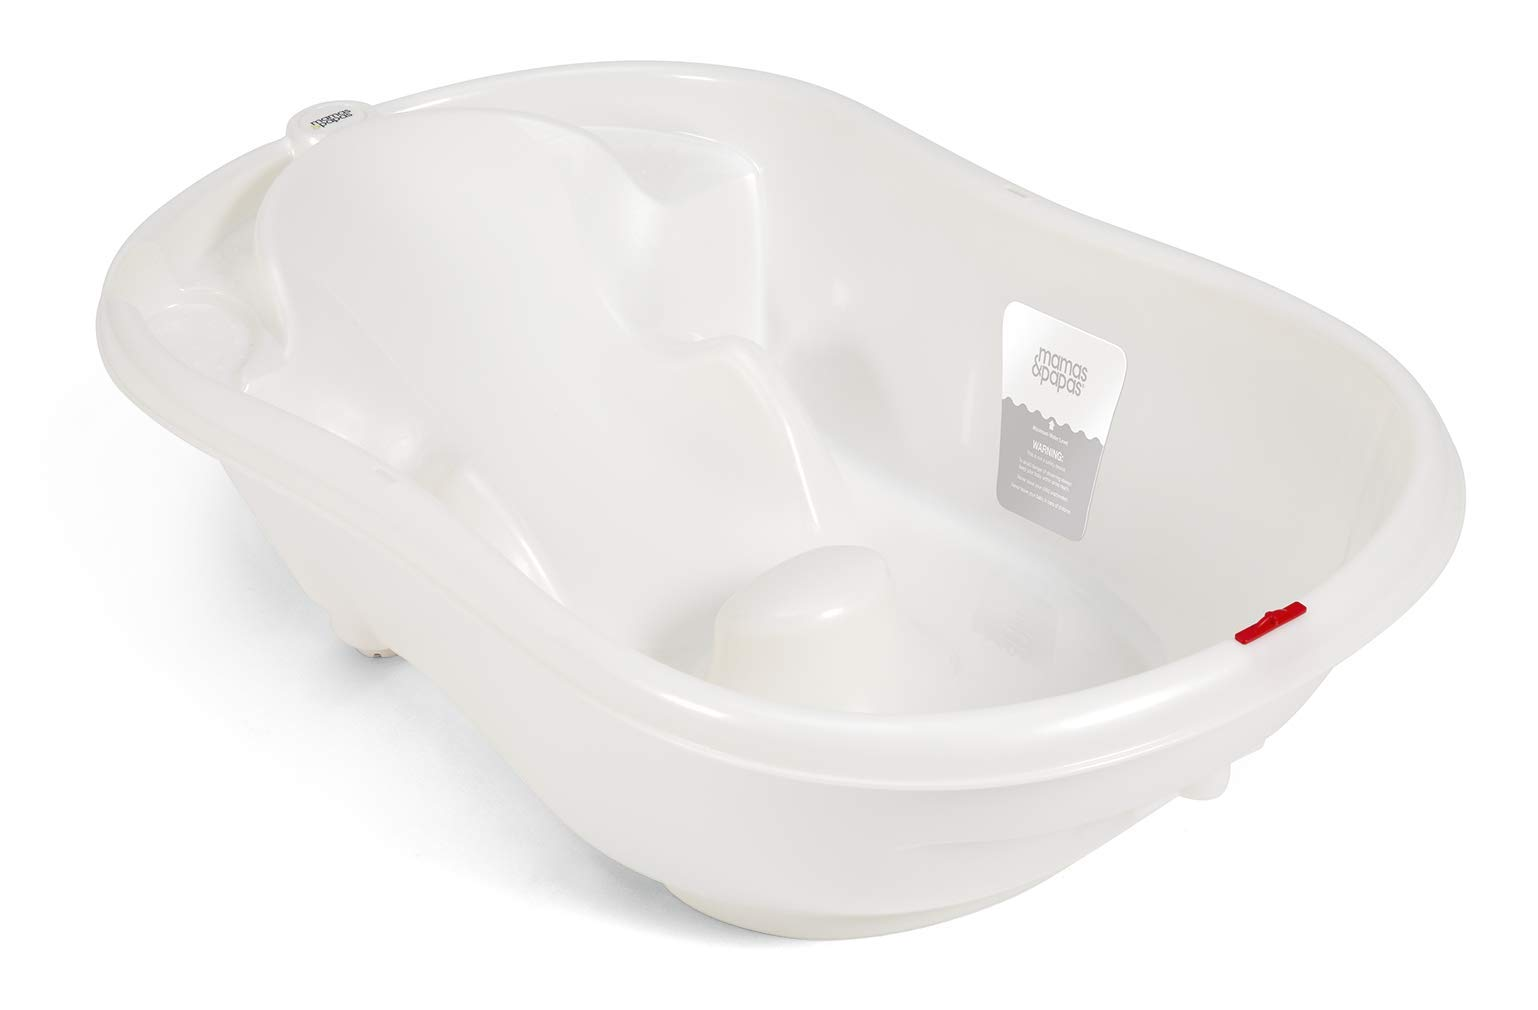 Mamas & Papas Acqua Bambino Two Stage Bath with Safety Support Positions for Newborn Baby to 12 Months - Pearl White 1